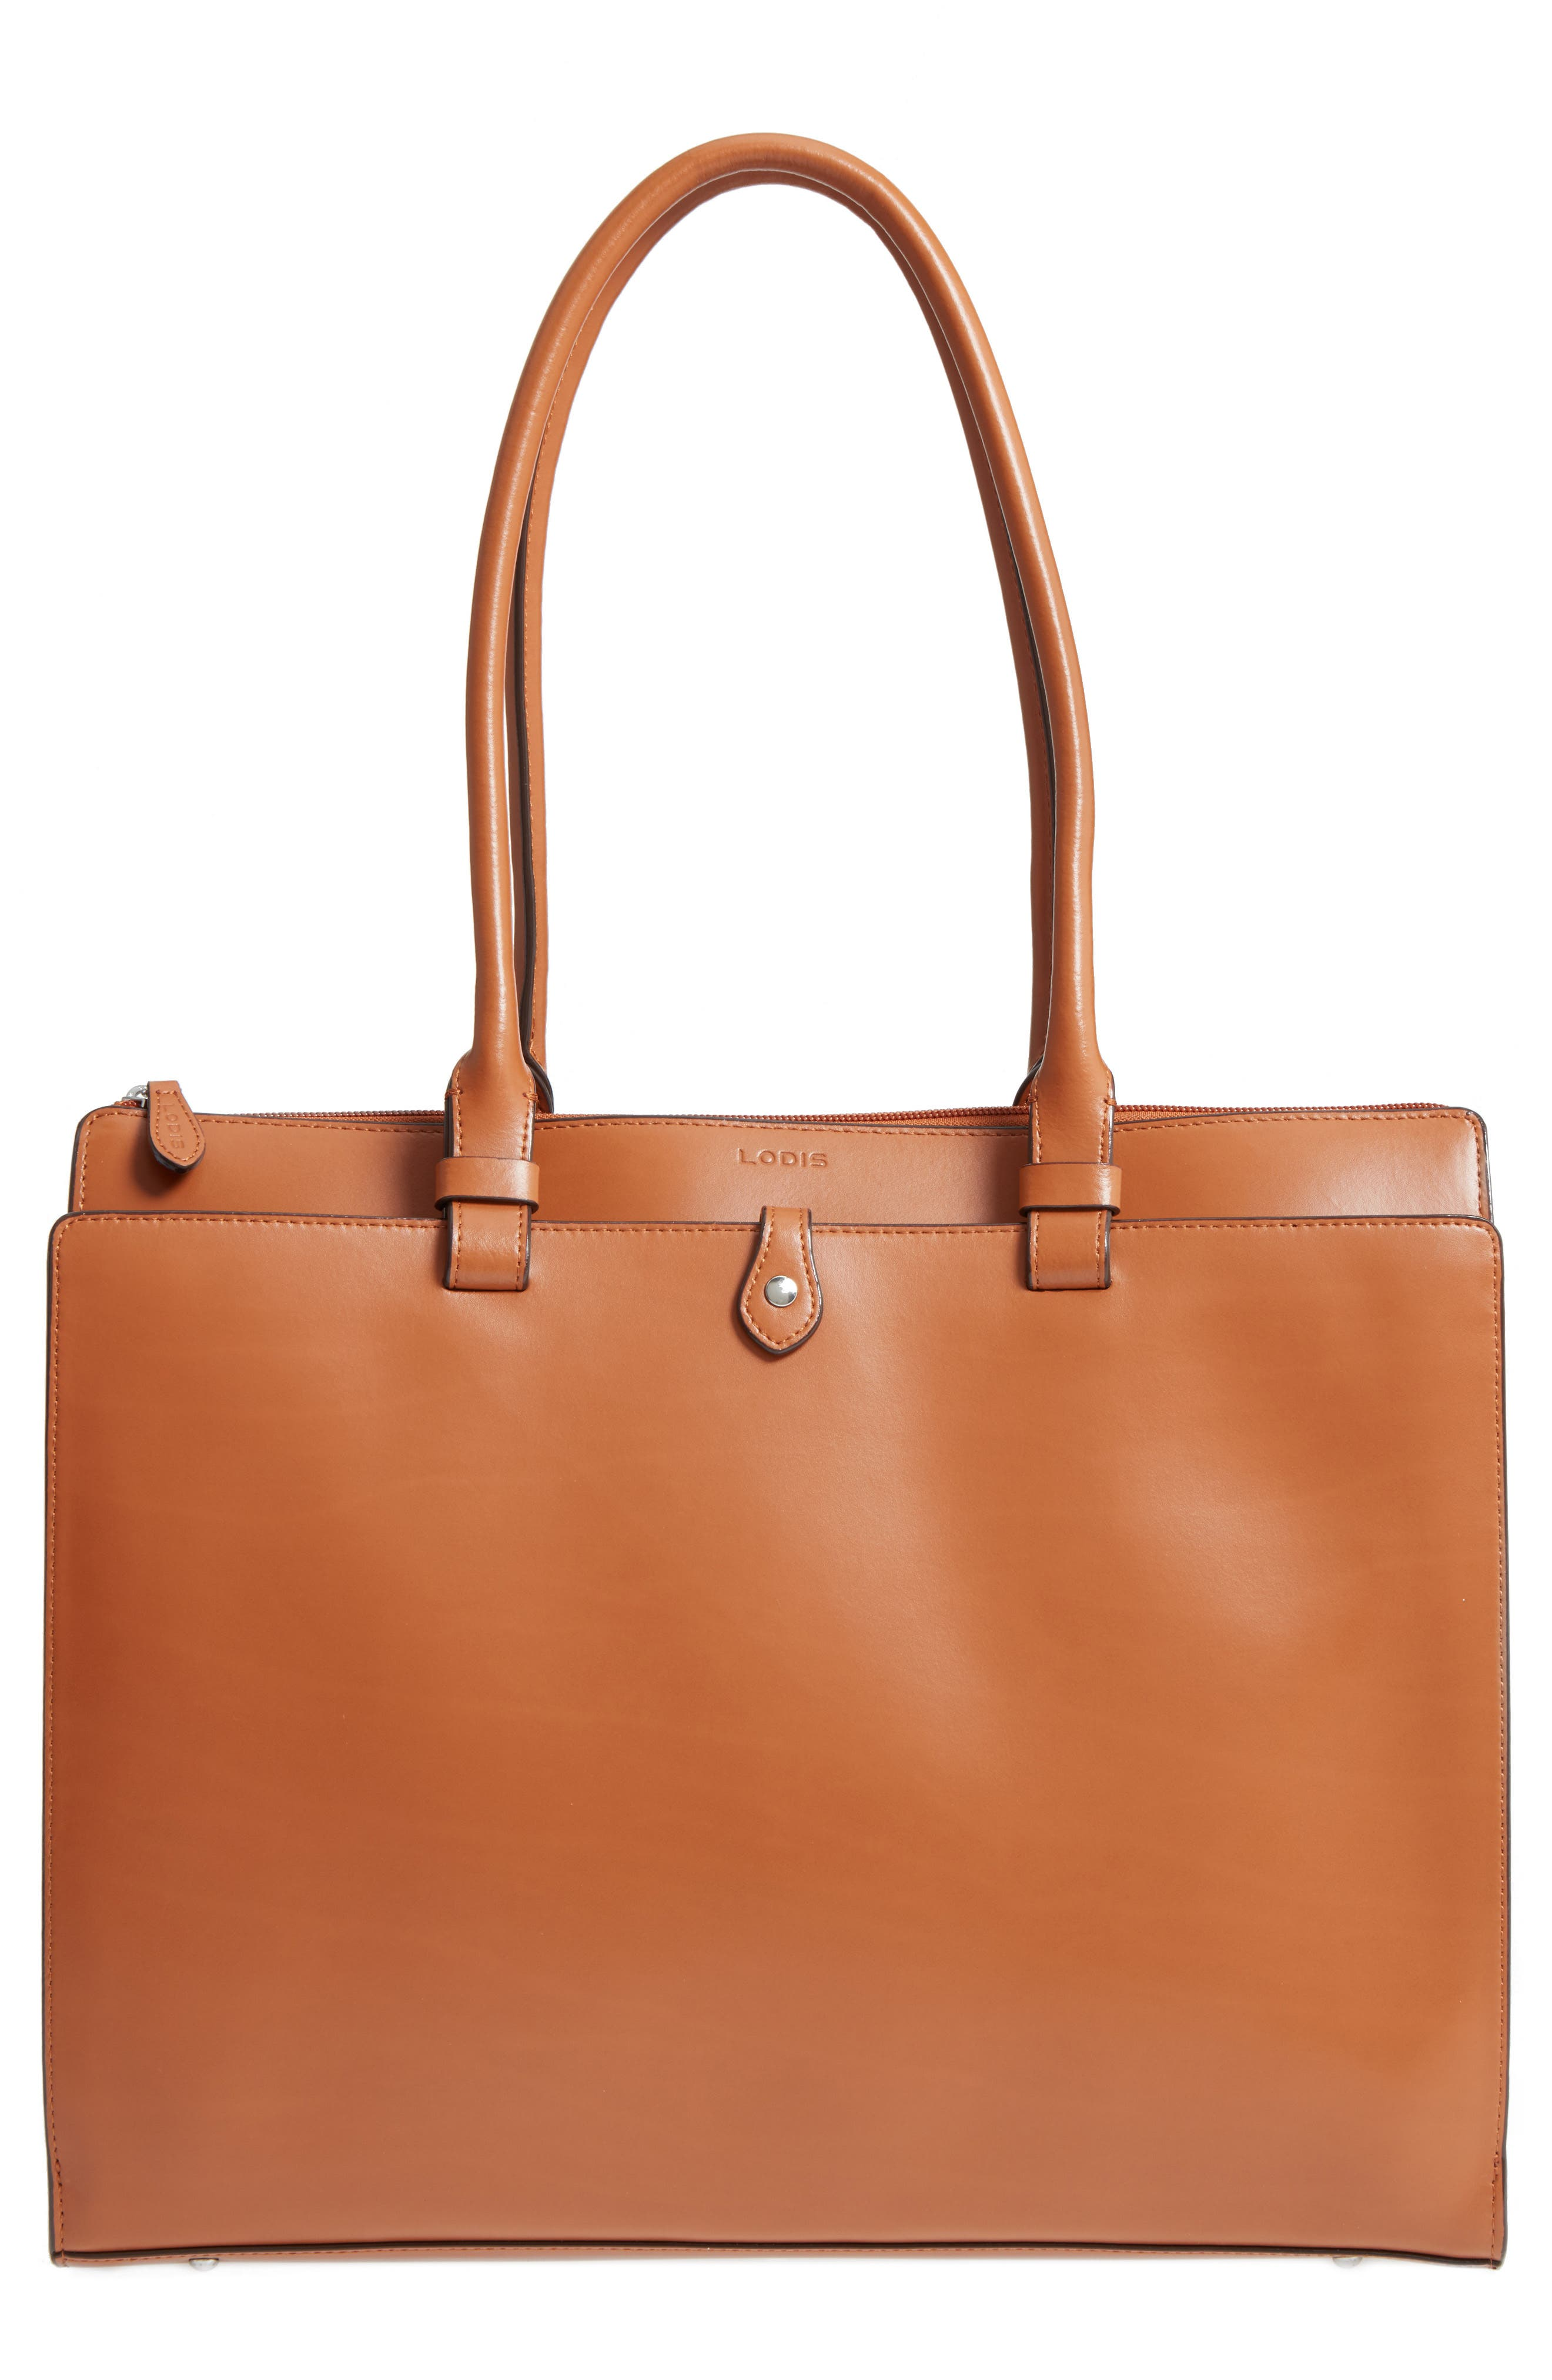 Alternate Image 1 Selected - LODIS Audrey Under Lock & Key - Jessica RFID Leather Satchel